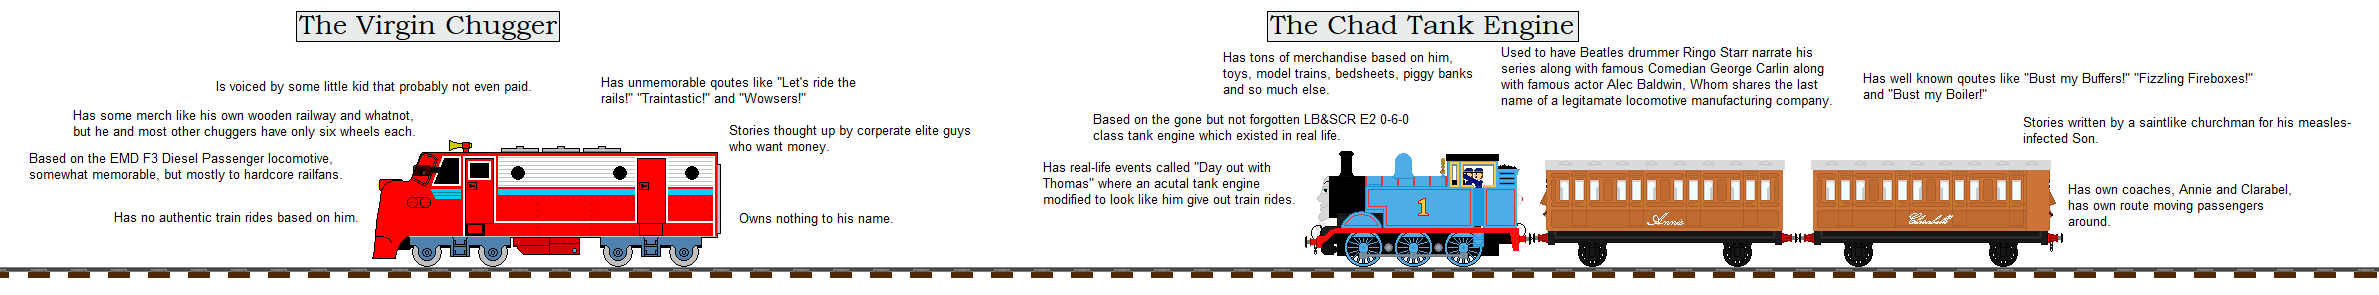 The Virgin Chugger Chad Tank Engine Used To Have Beatles Drummer Ringo Starr Narrate His